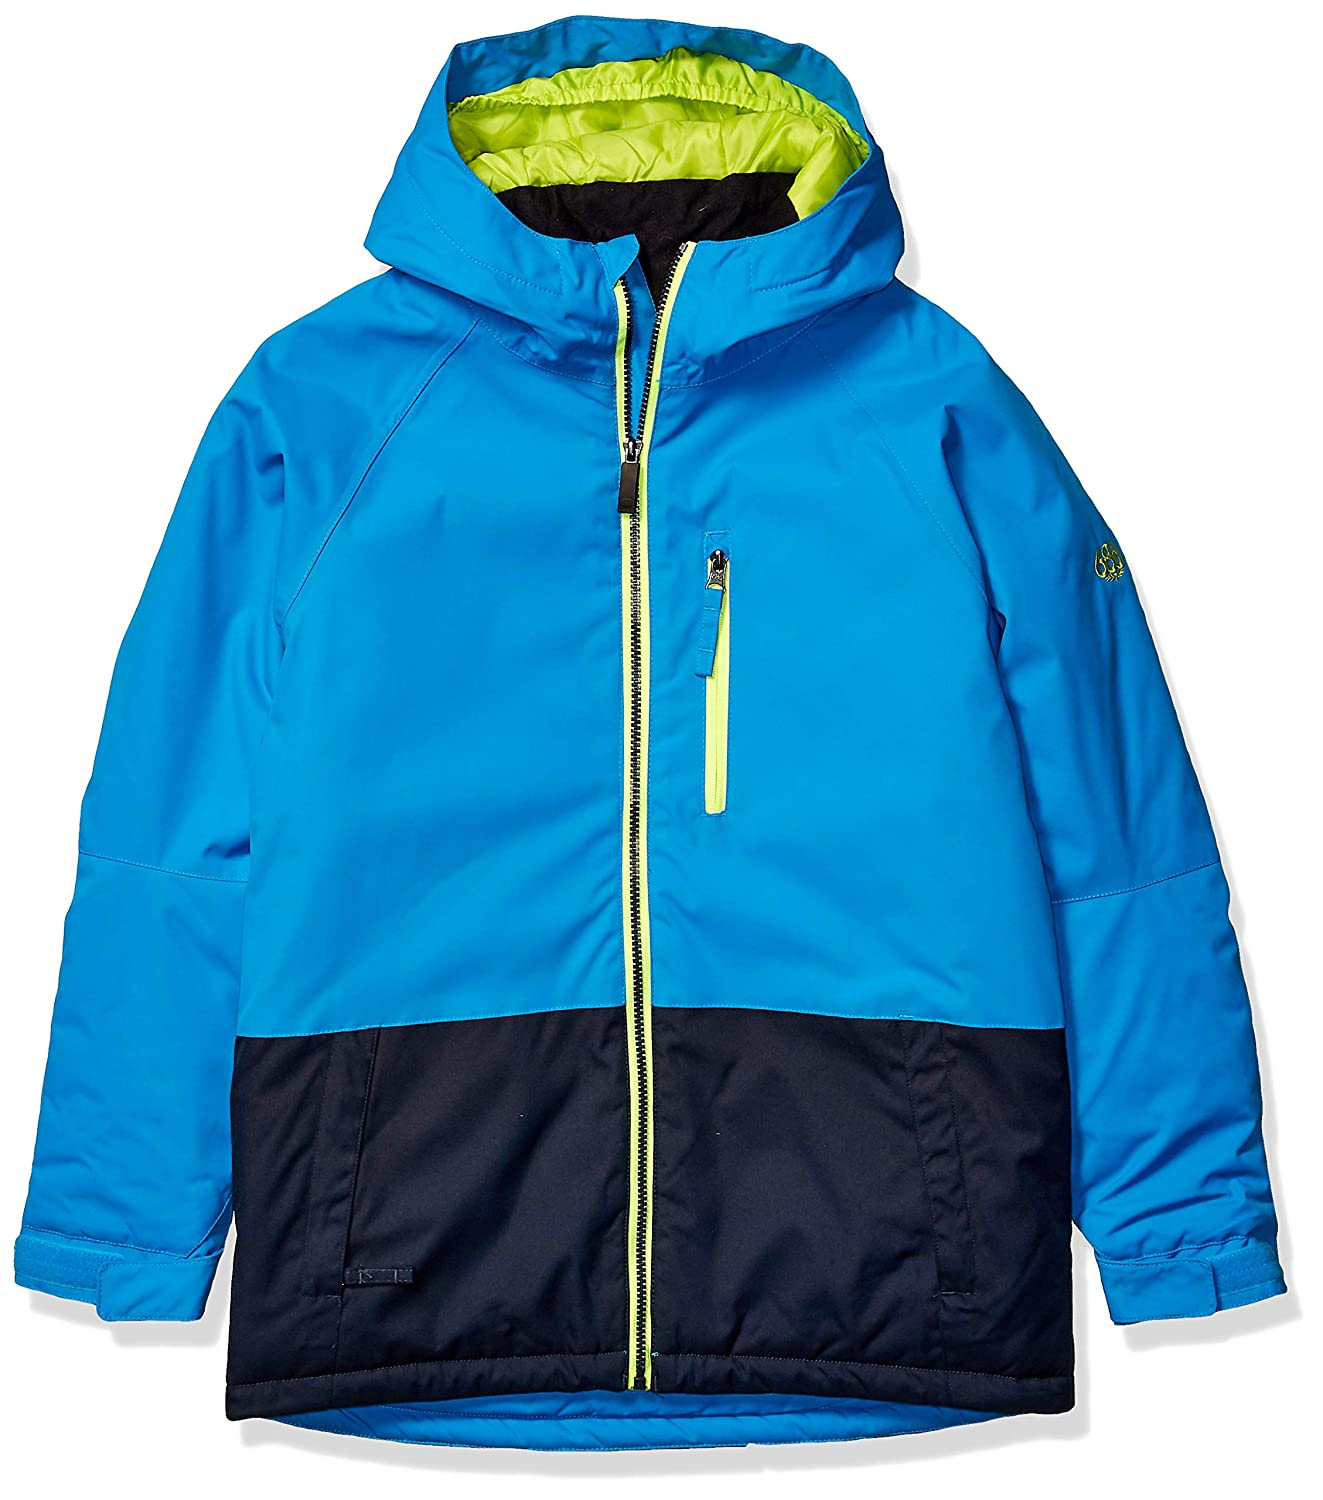 Image of 686 Boys' Jinx Insulated Waterproof Ski/Snowboard Jacket Jackets